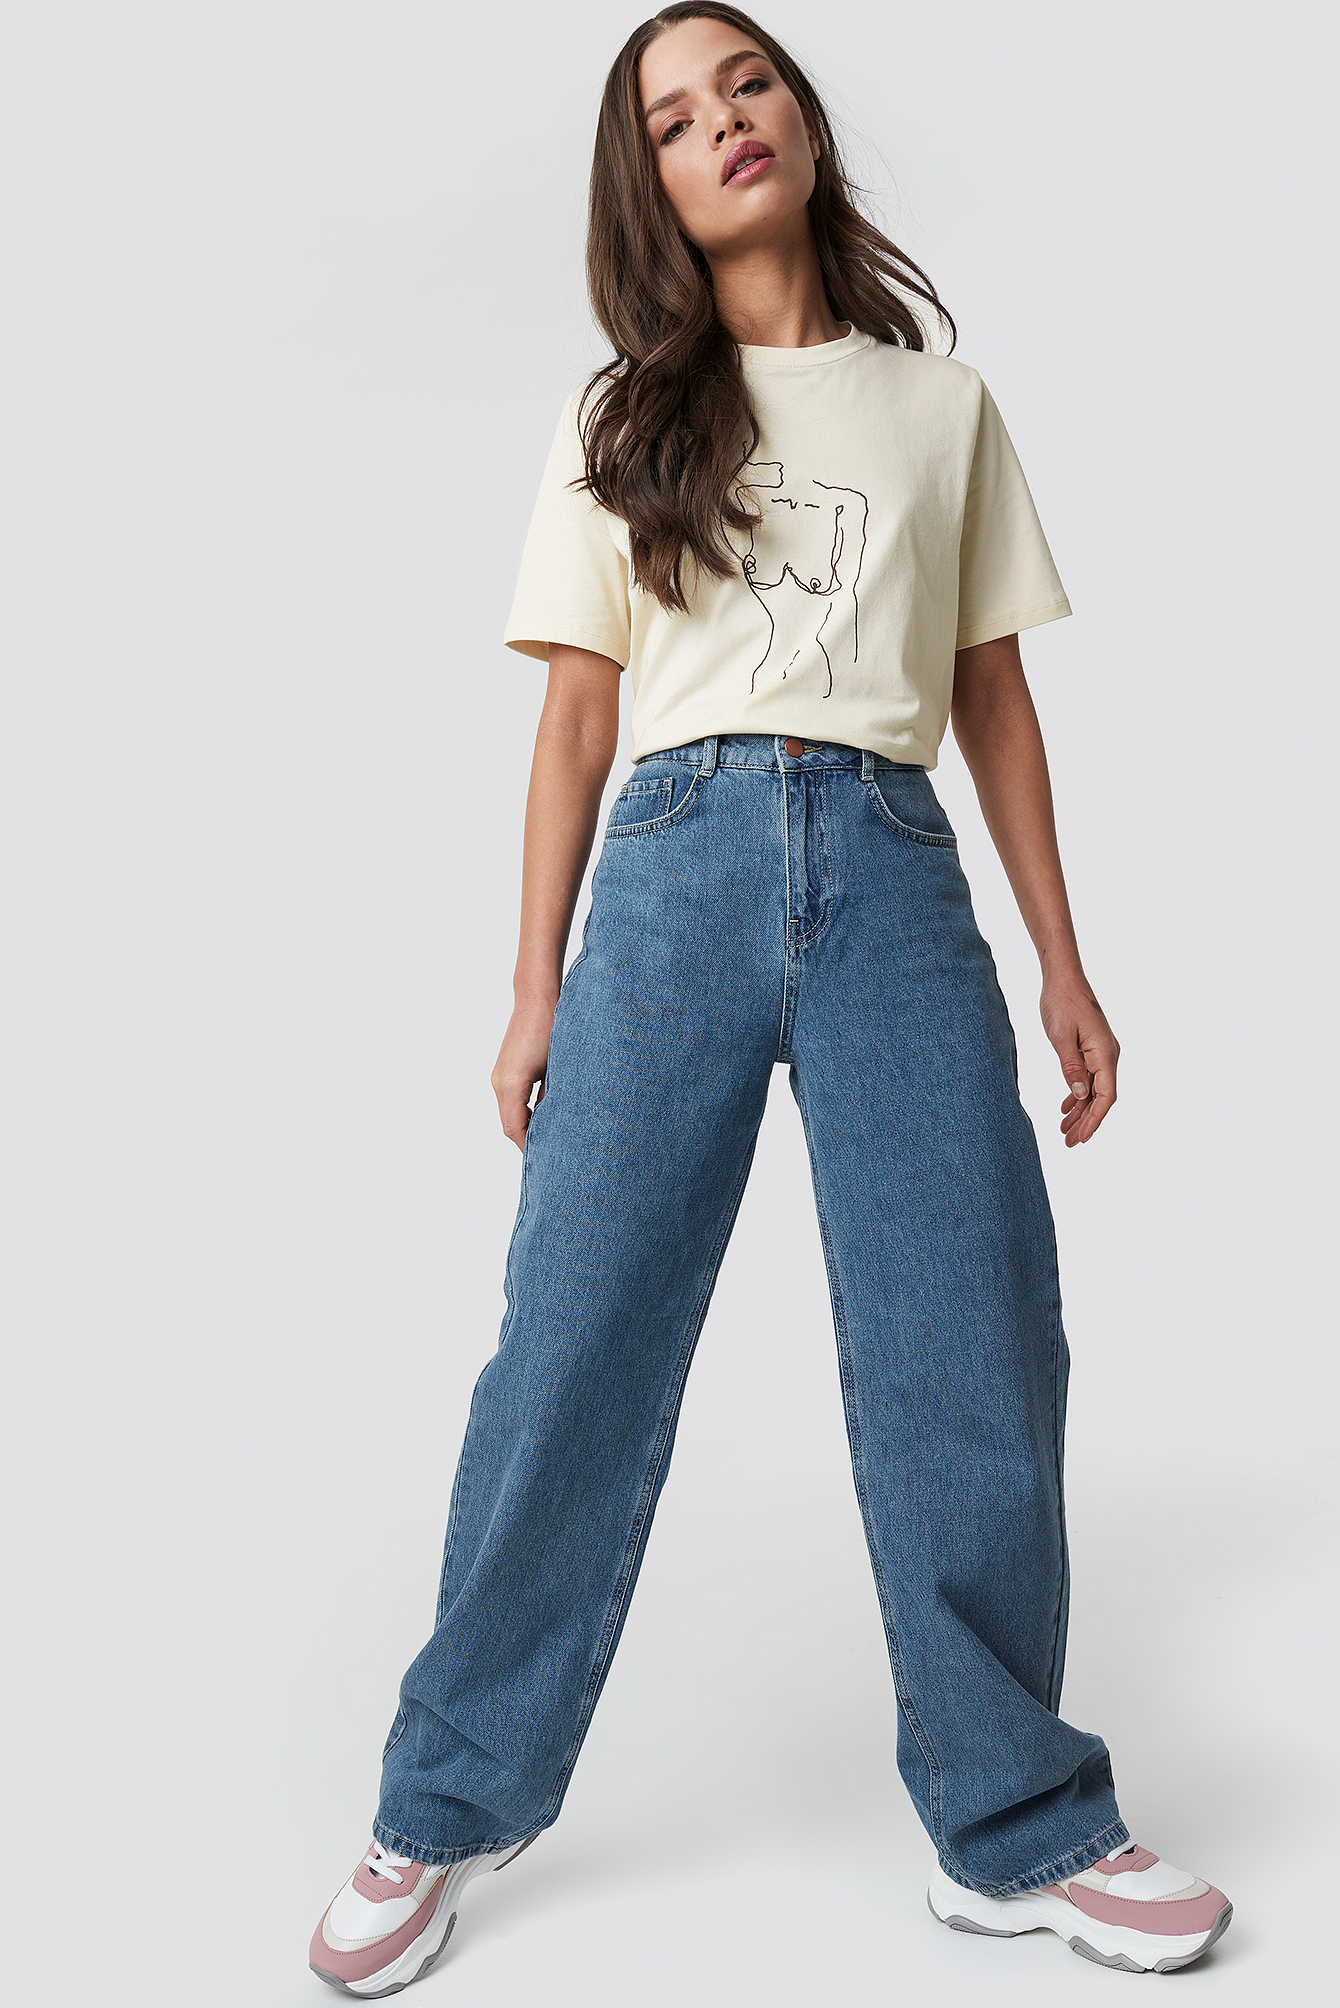 emilie briting x na-kd -  High Waist Flared Jeans - Blue